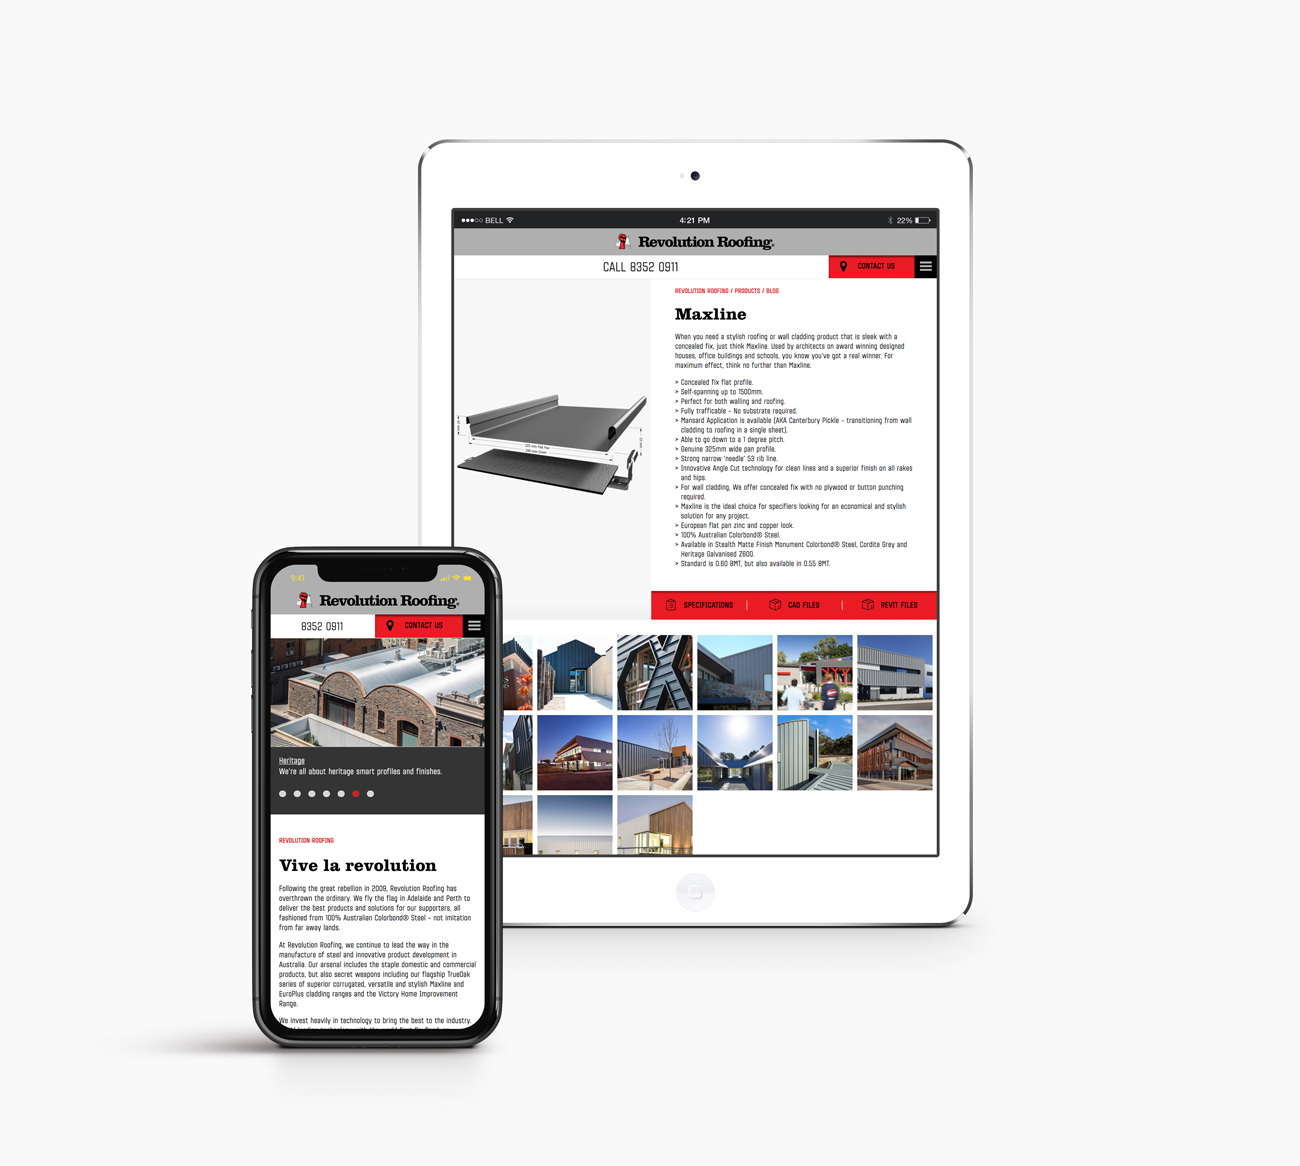 revolution-roofing-website-2